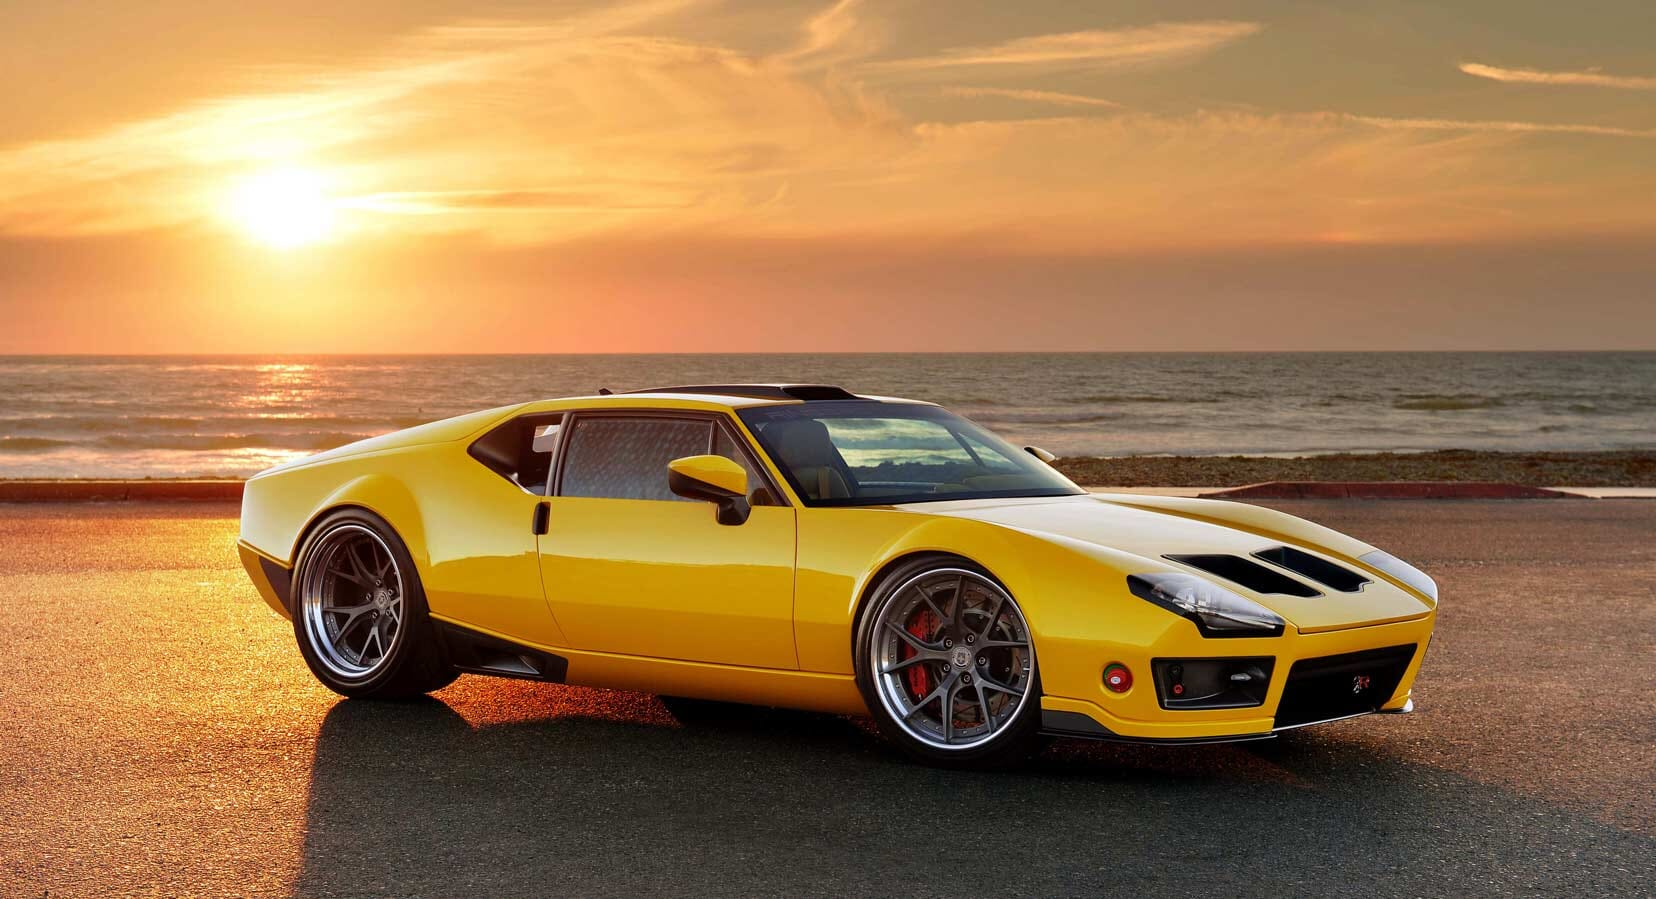 Ringbrothers & Nike Update De Tomaso Pantera, The Car That Elvis Shot